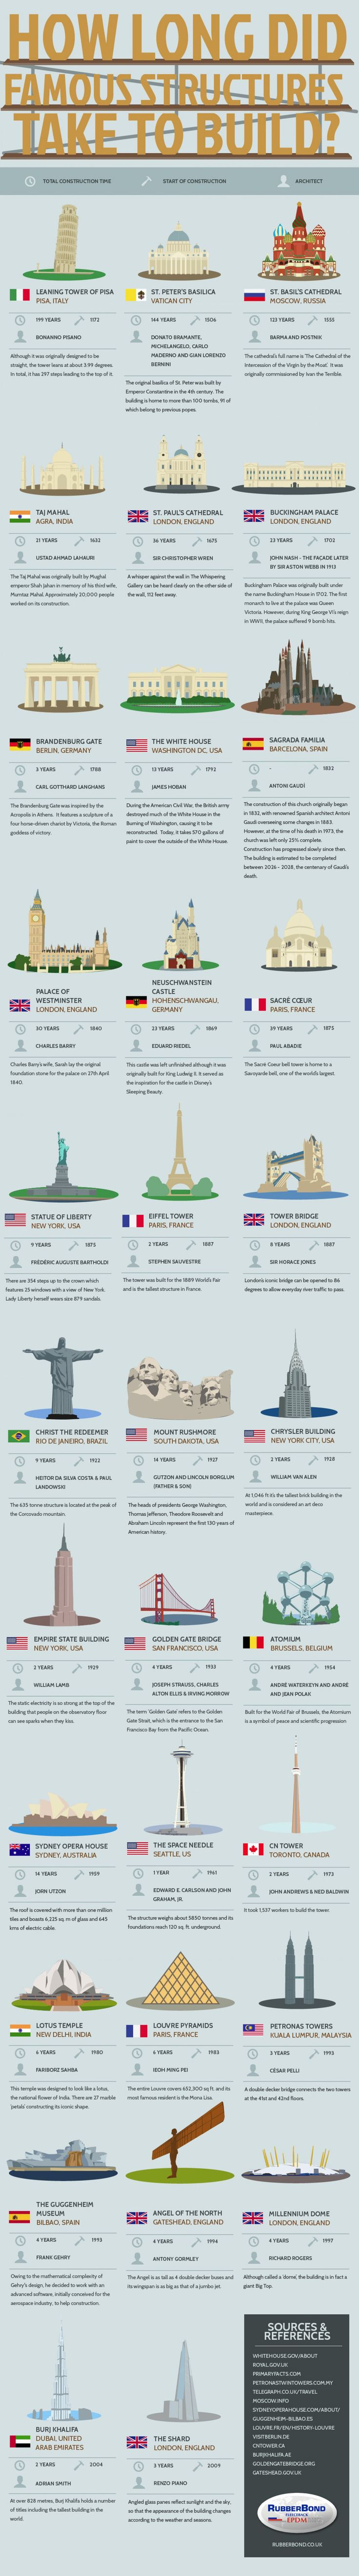 How Long Did Famous Structures Take to Build - Infographic